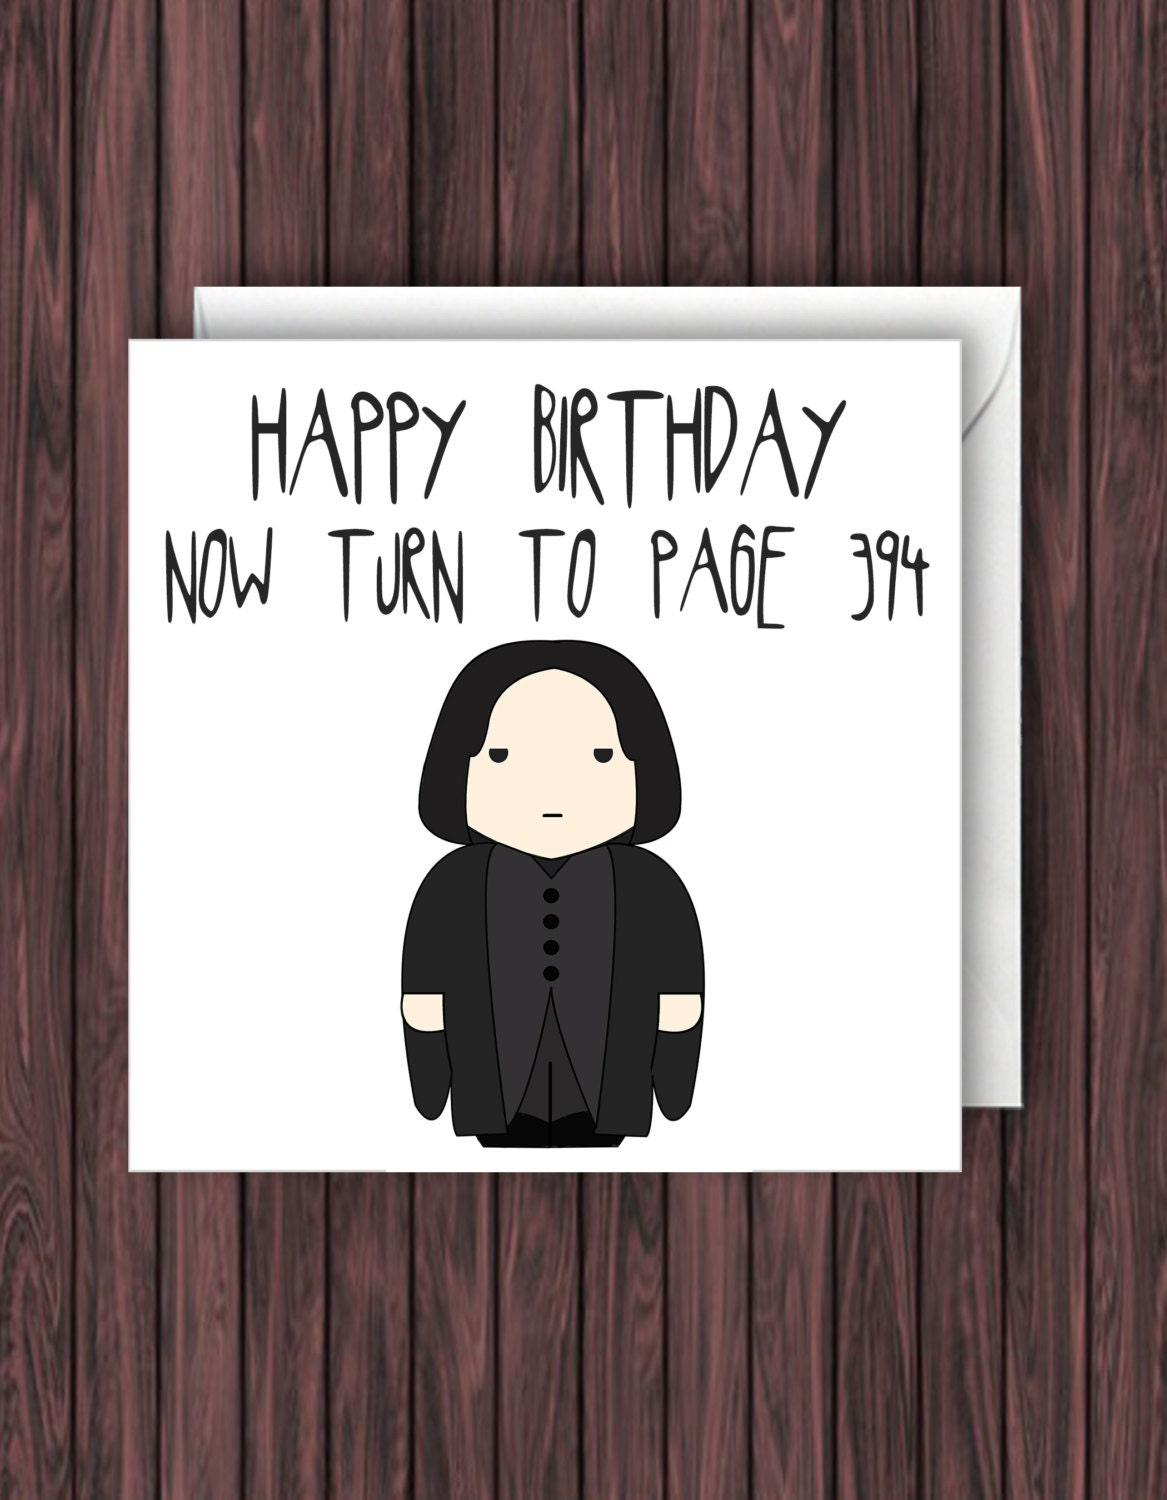 Snape 394 Harry Potter Birthday Card Funny Greetings Card